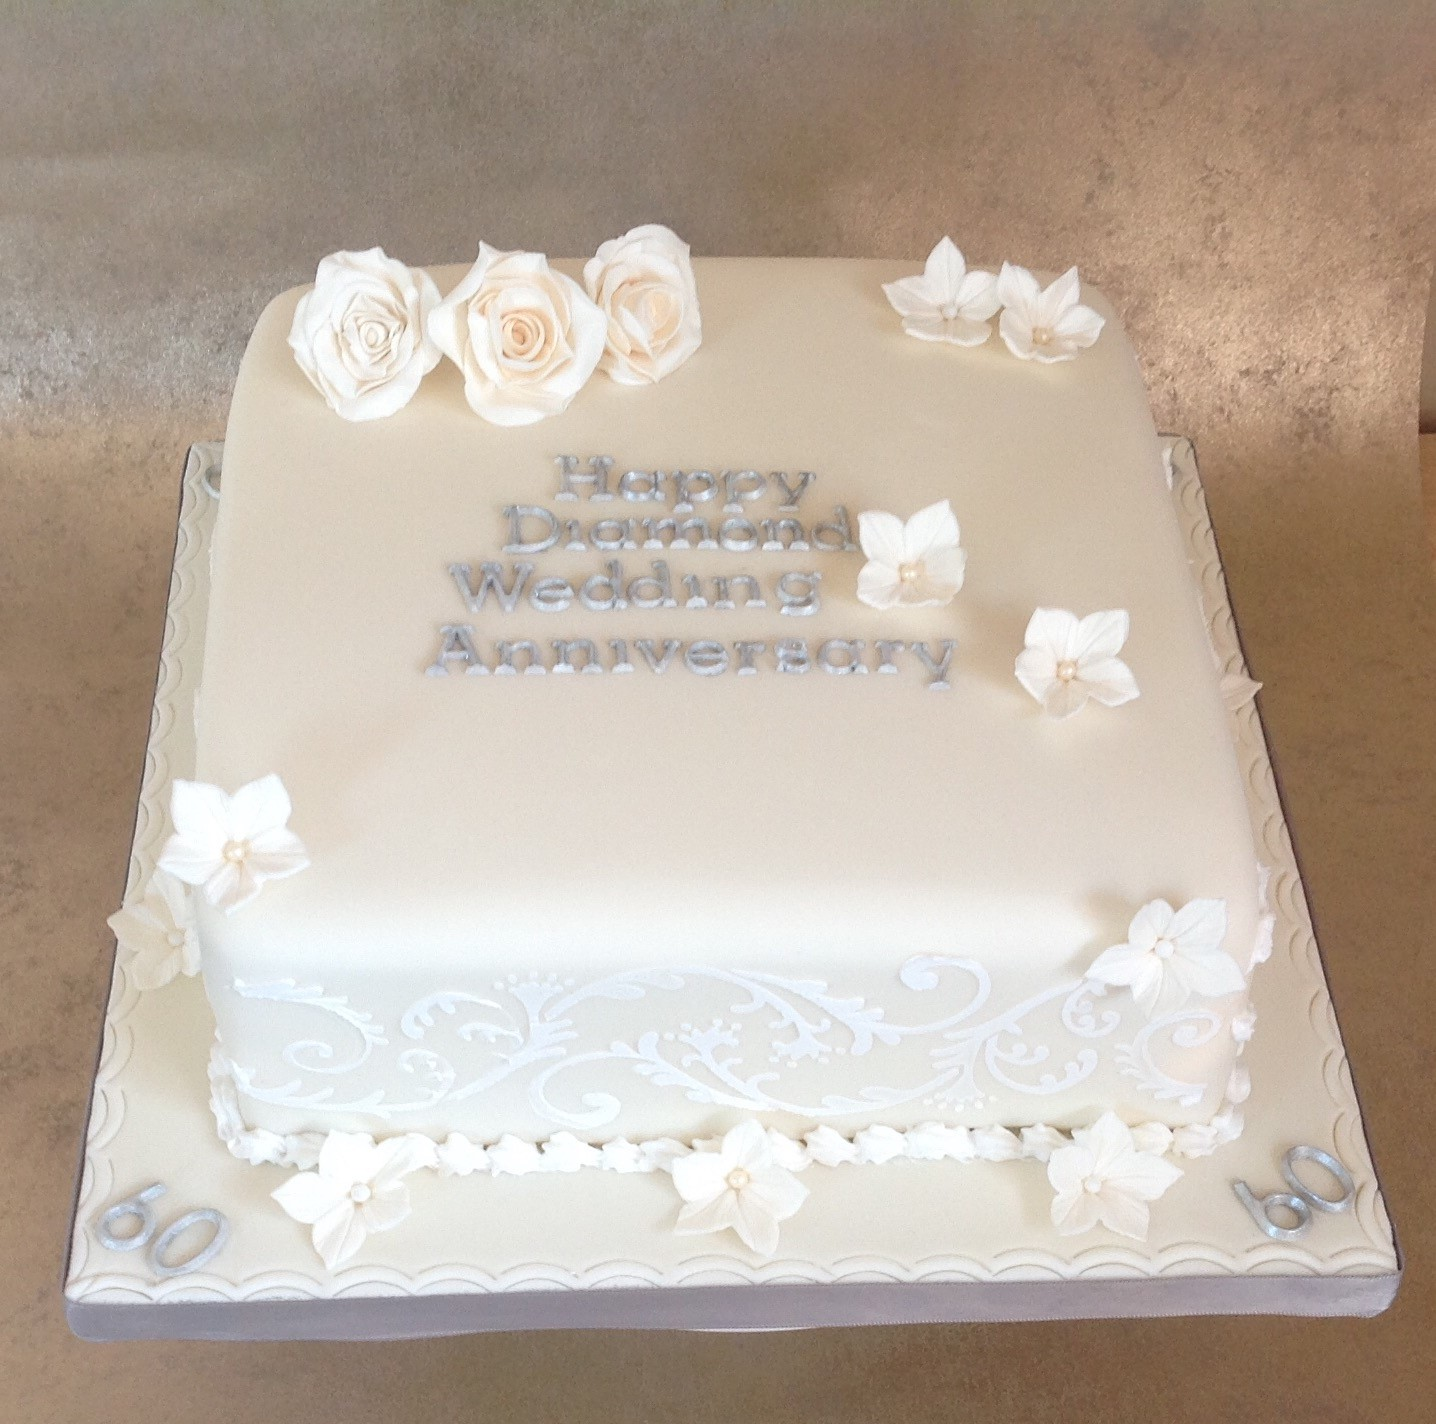 Silver Wedding Anniversary Cake Decorations